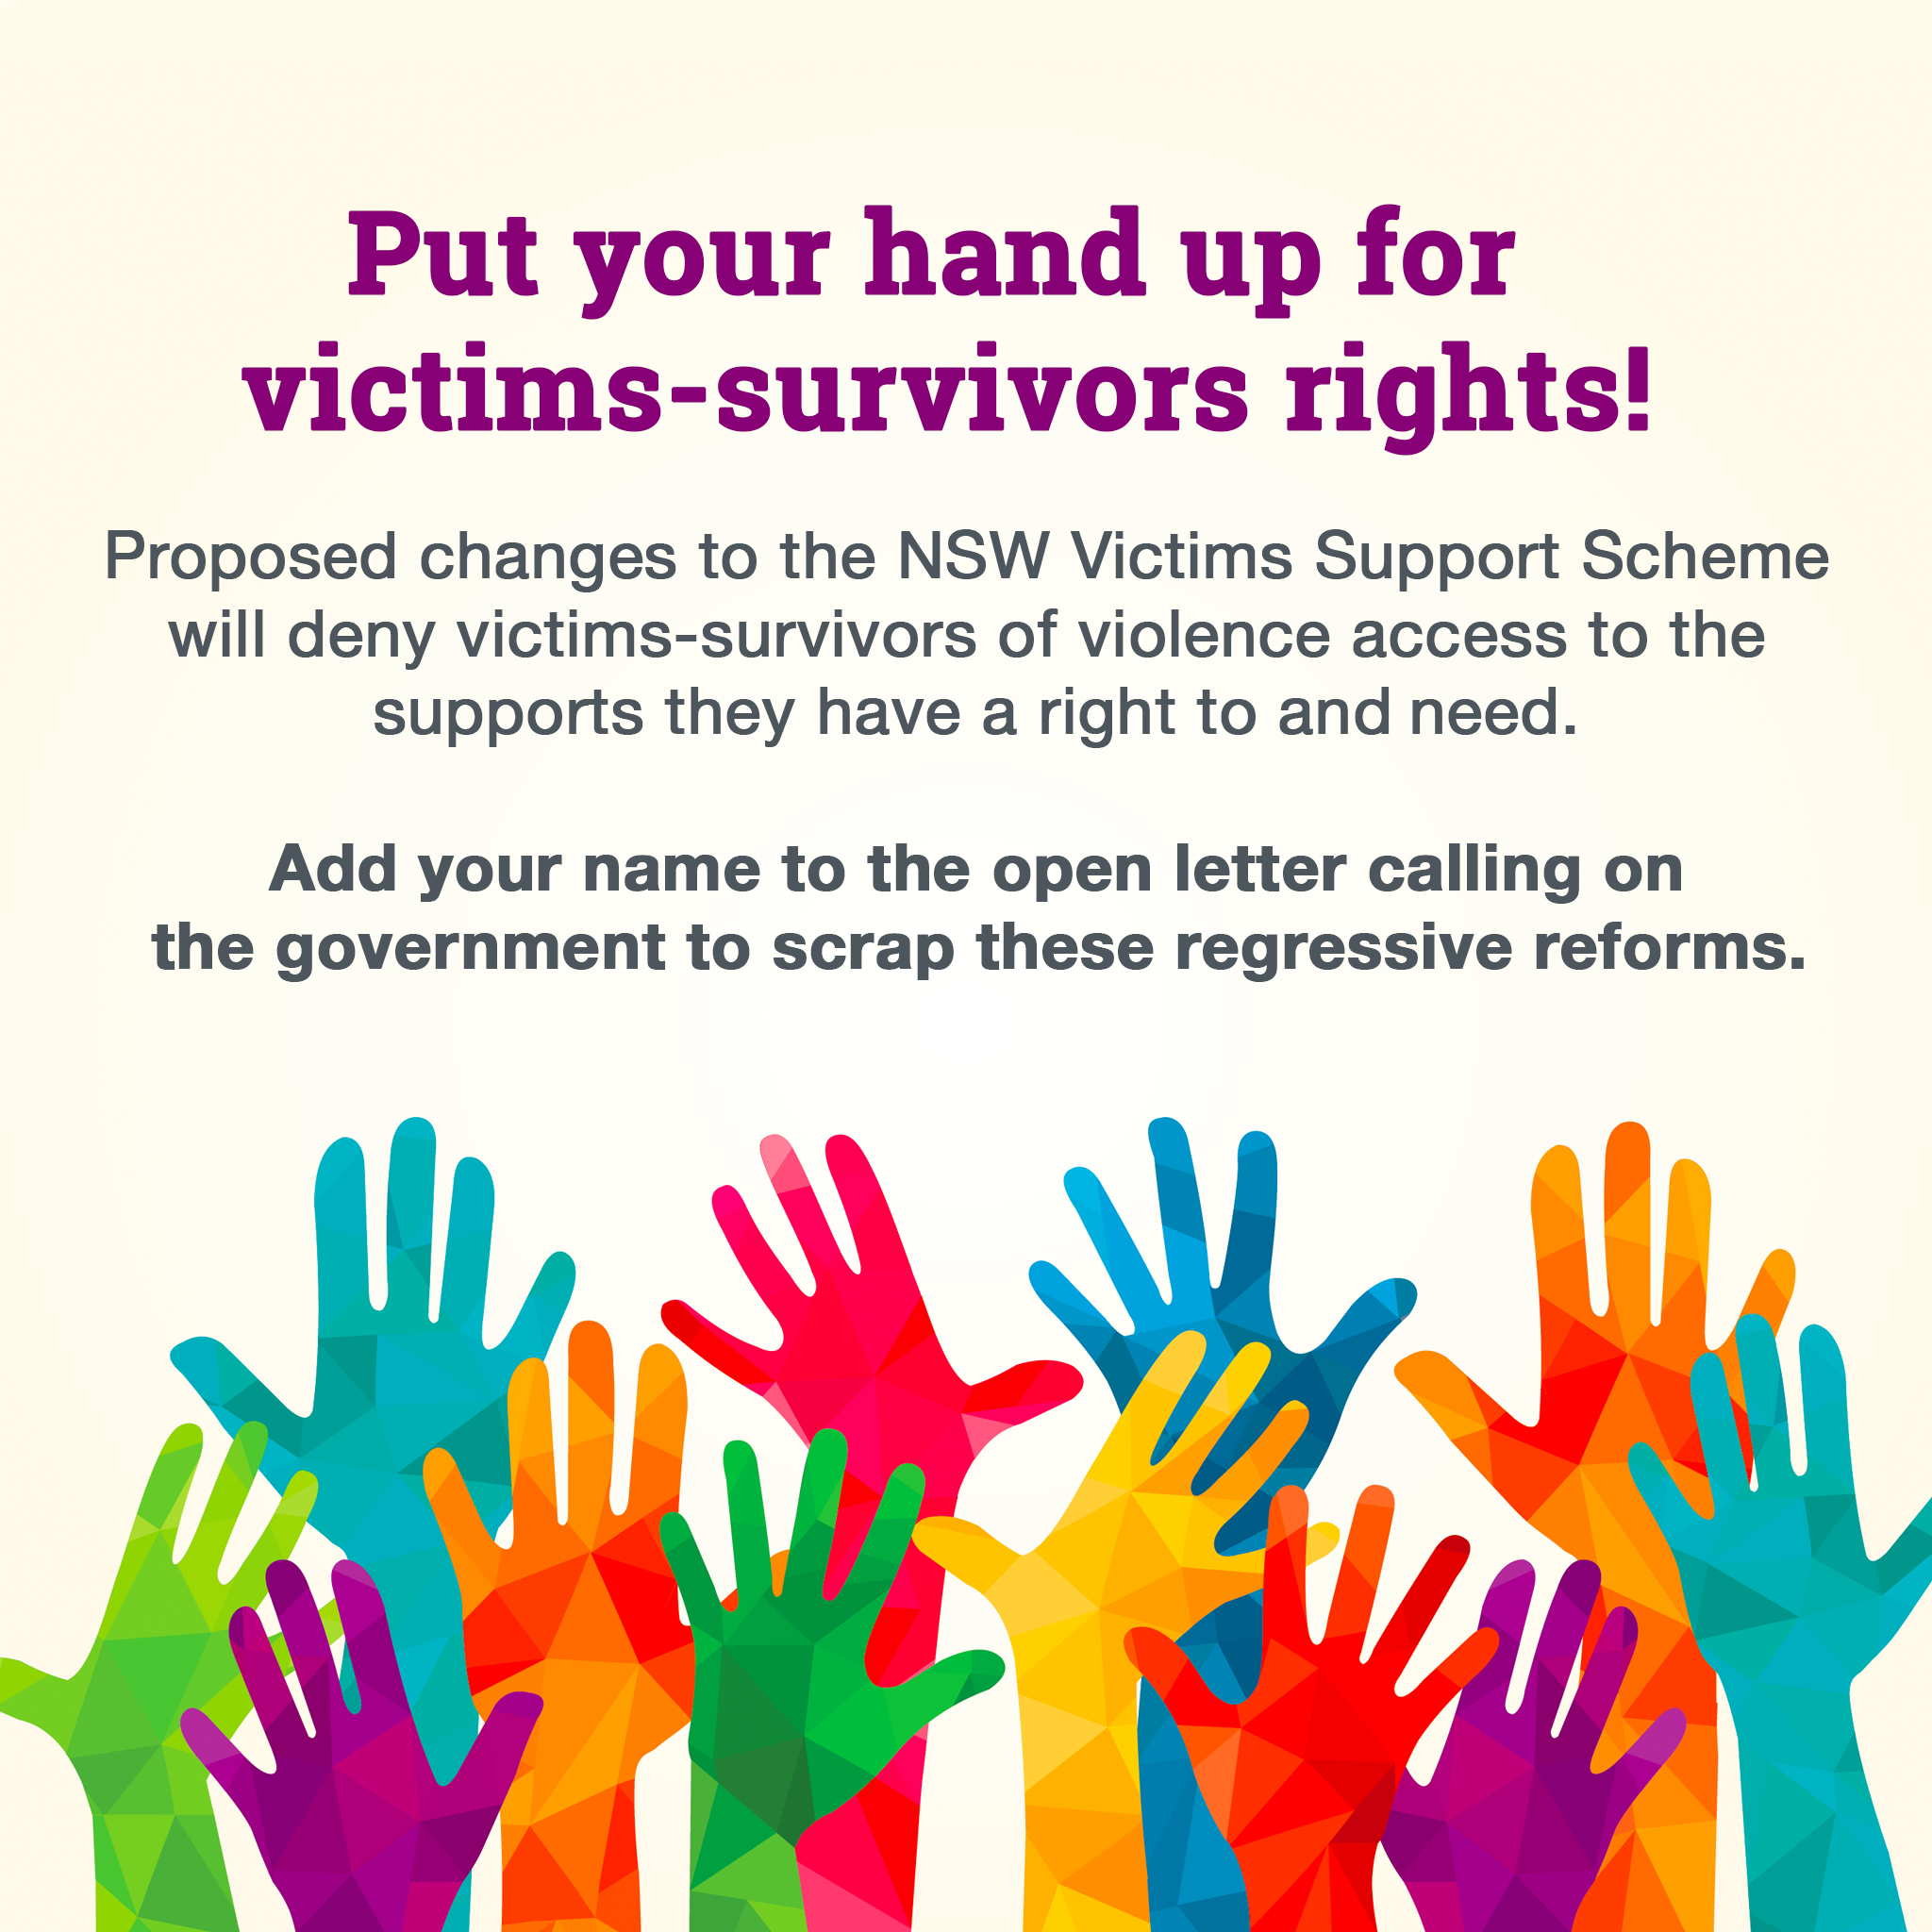 Put your hand up to for victims-survivors right